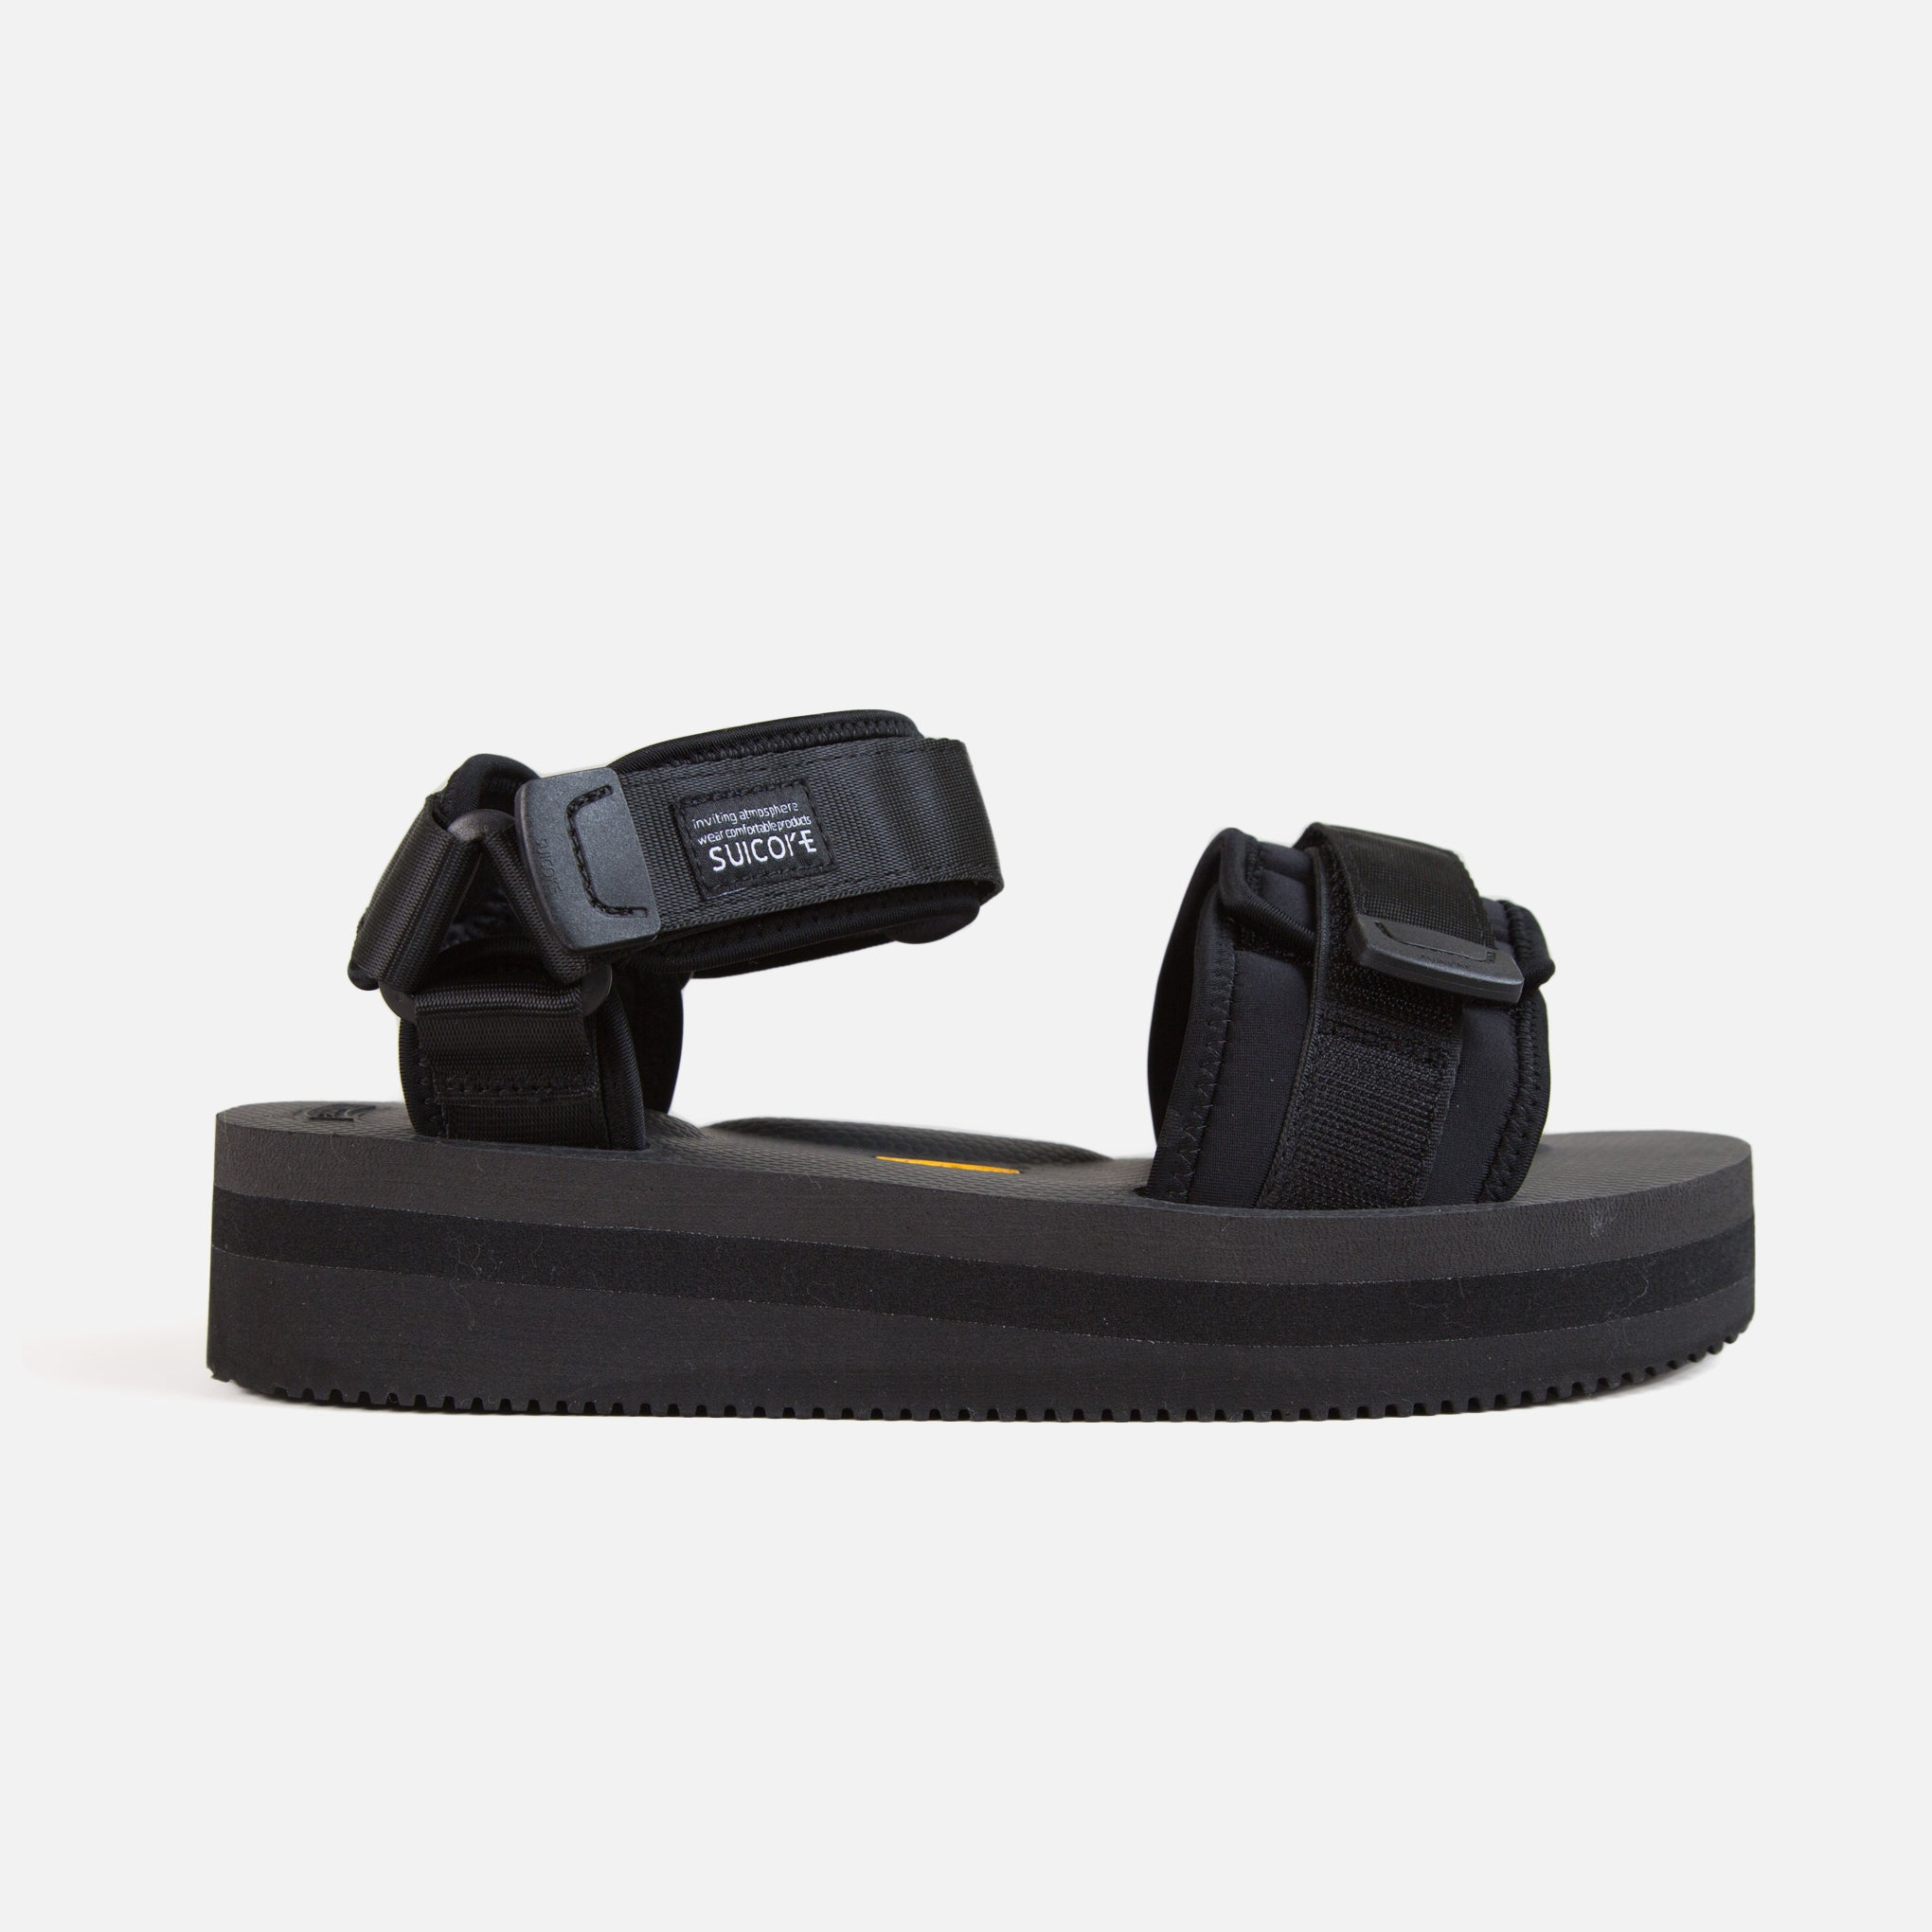 6ffd98e3239 Suicoke Cel-VPO Sandals in Black